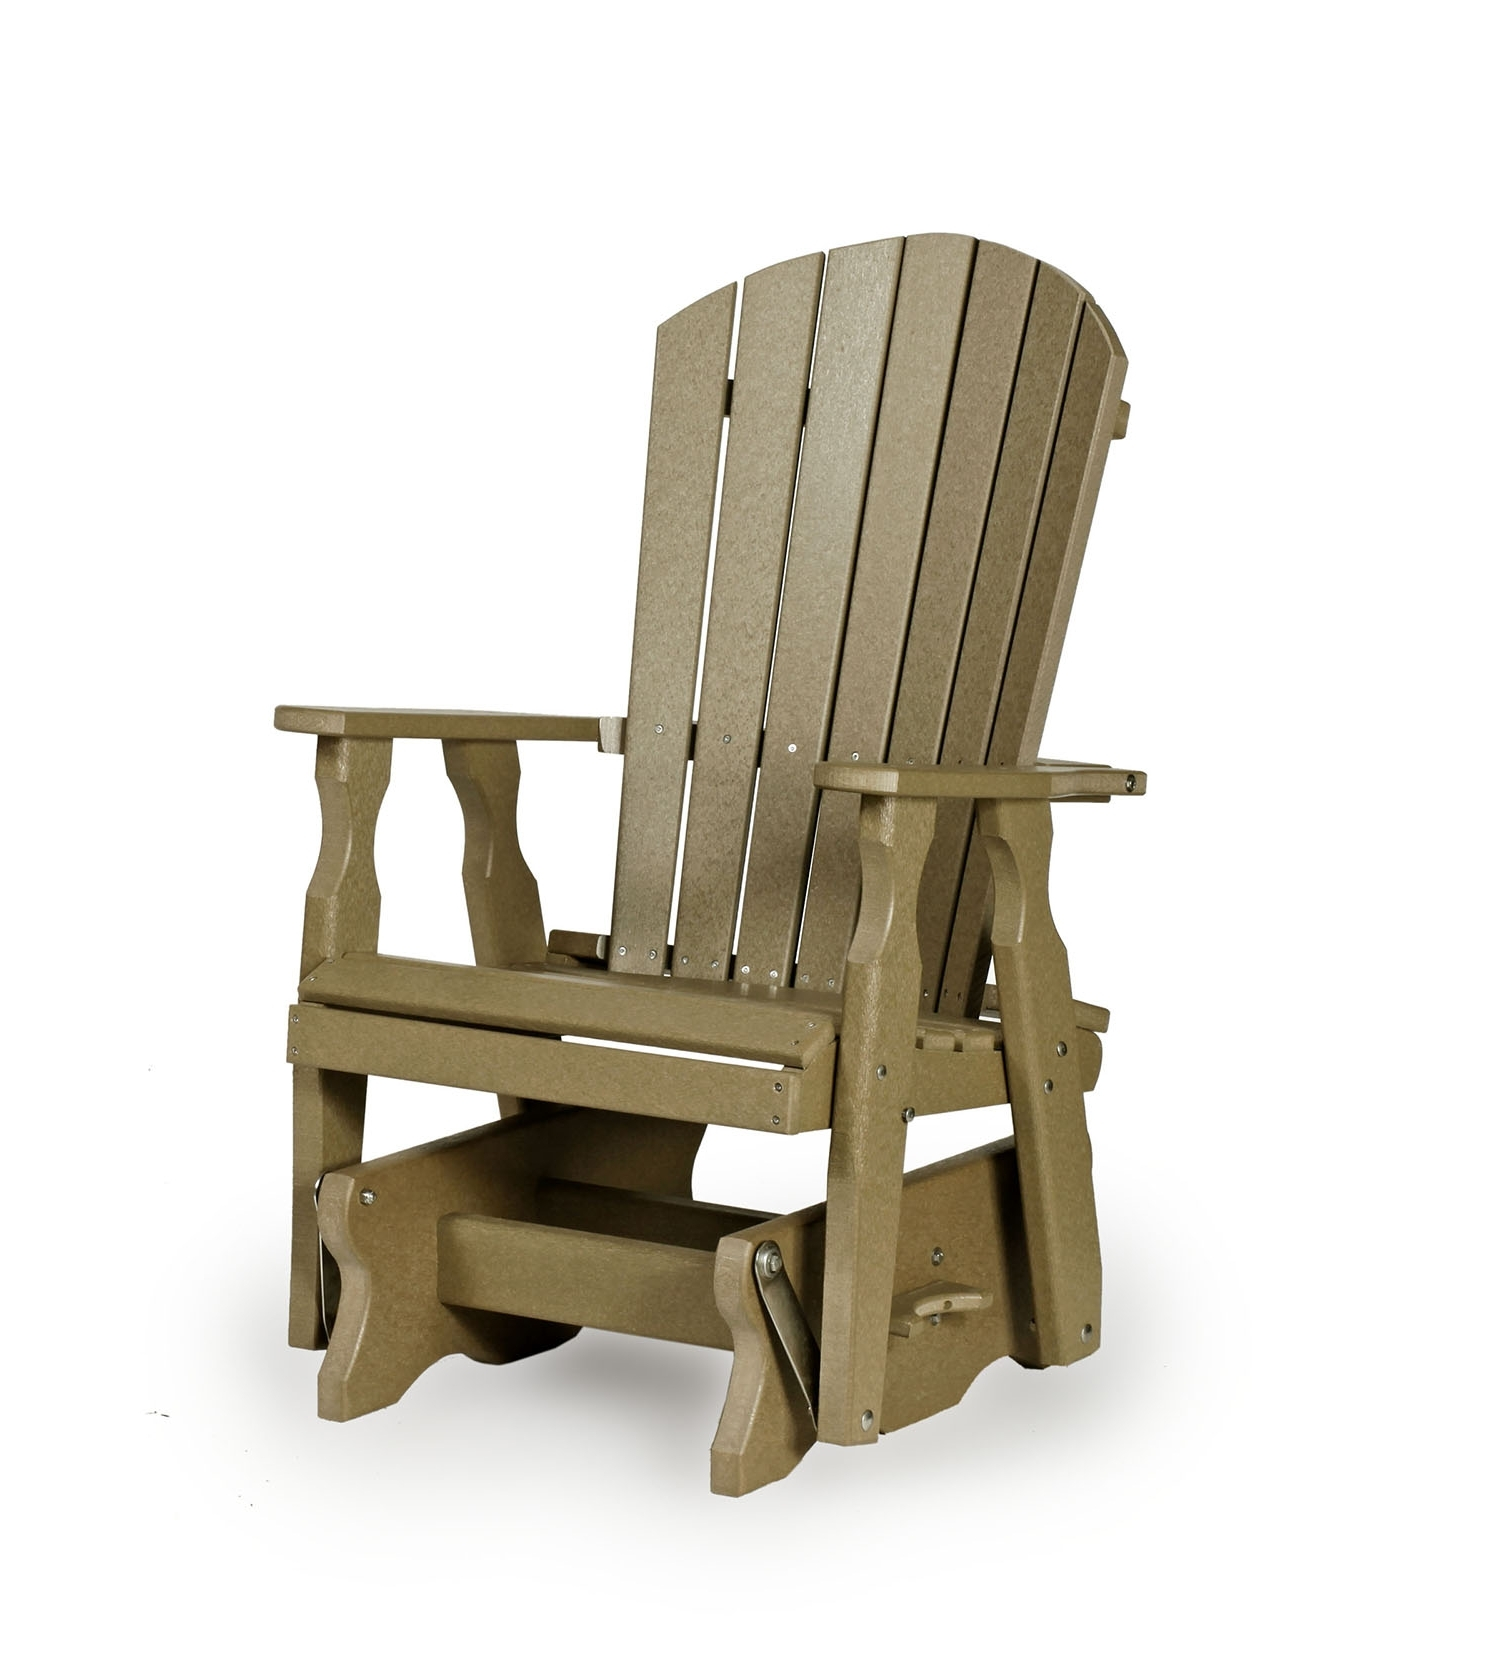 Rockers, Chairs, Gliders & Chaises Regarding Well Known Patio Rocking Chairs And Gliders (View 2 of 15)